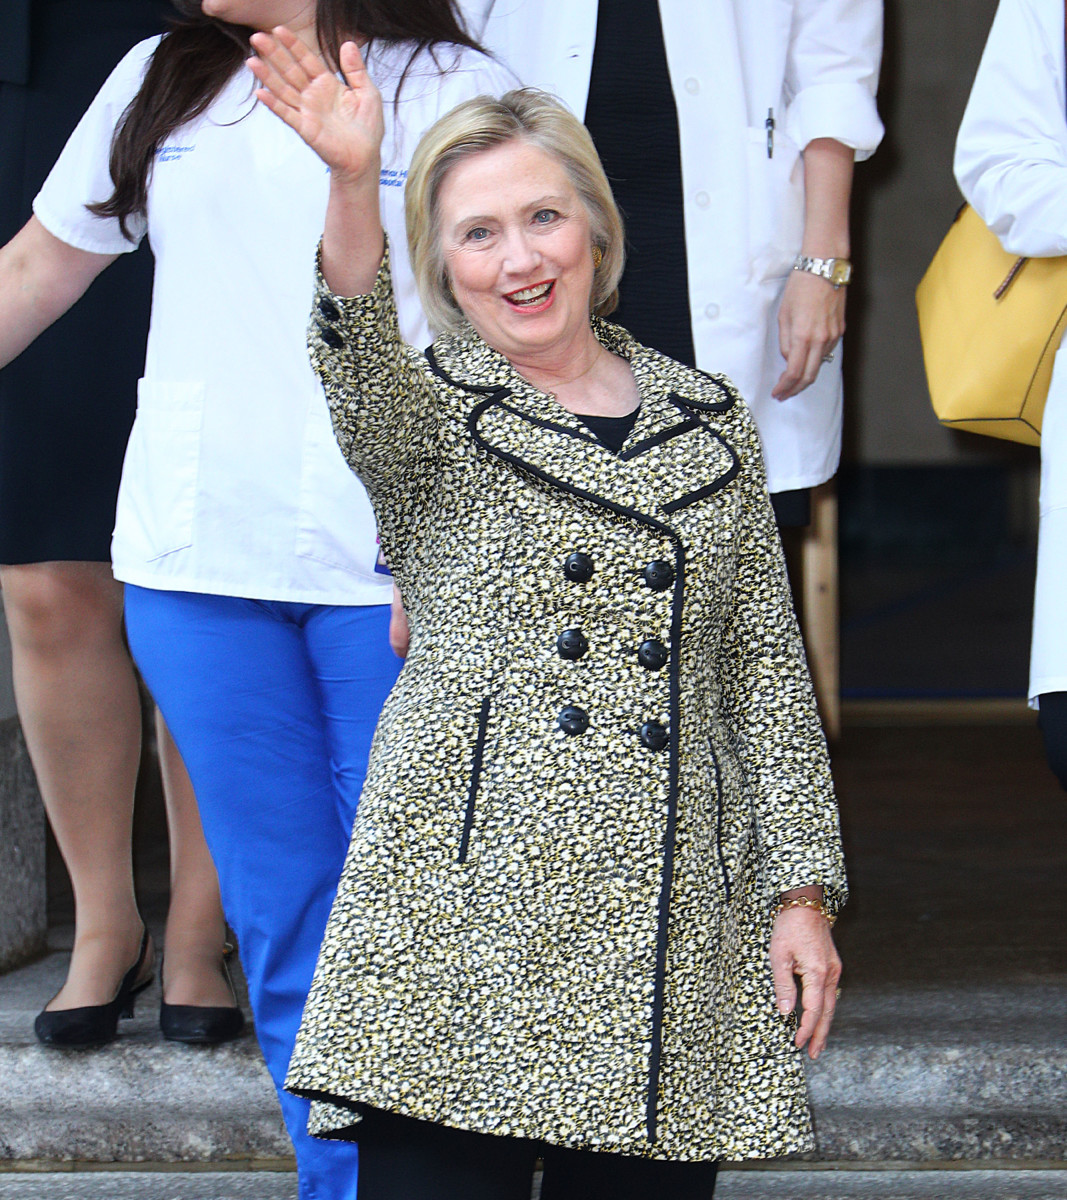 Hillary Clinton at Lenox Hill Hospital in New York City. Photo: Getty Images